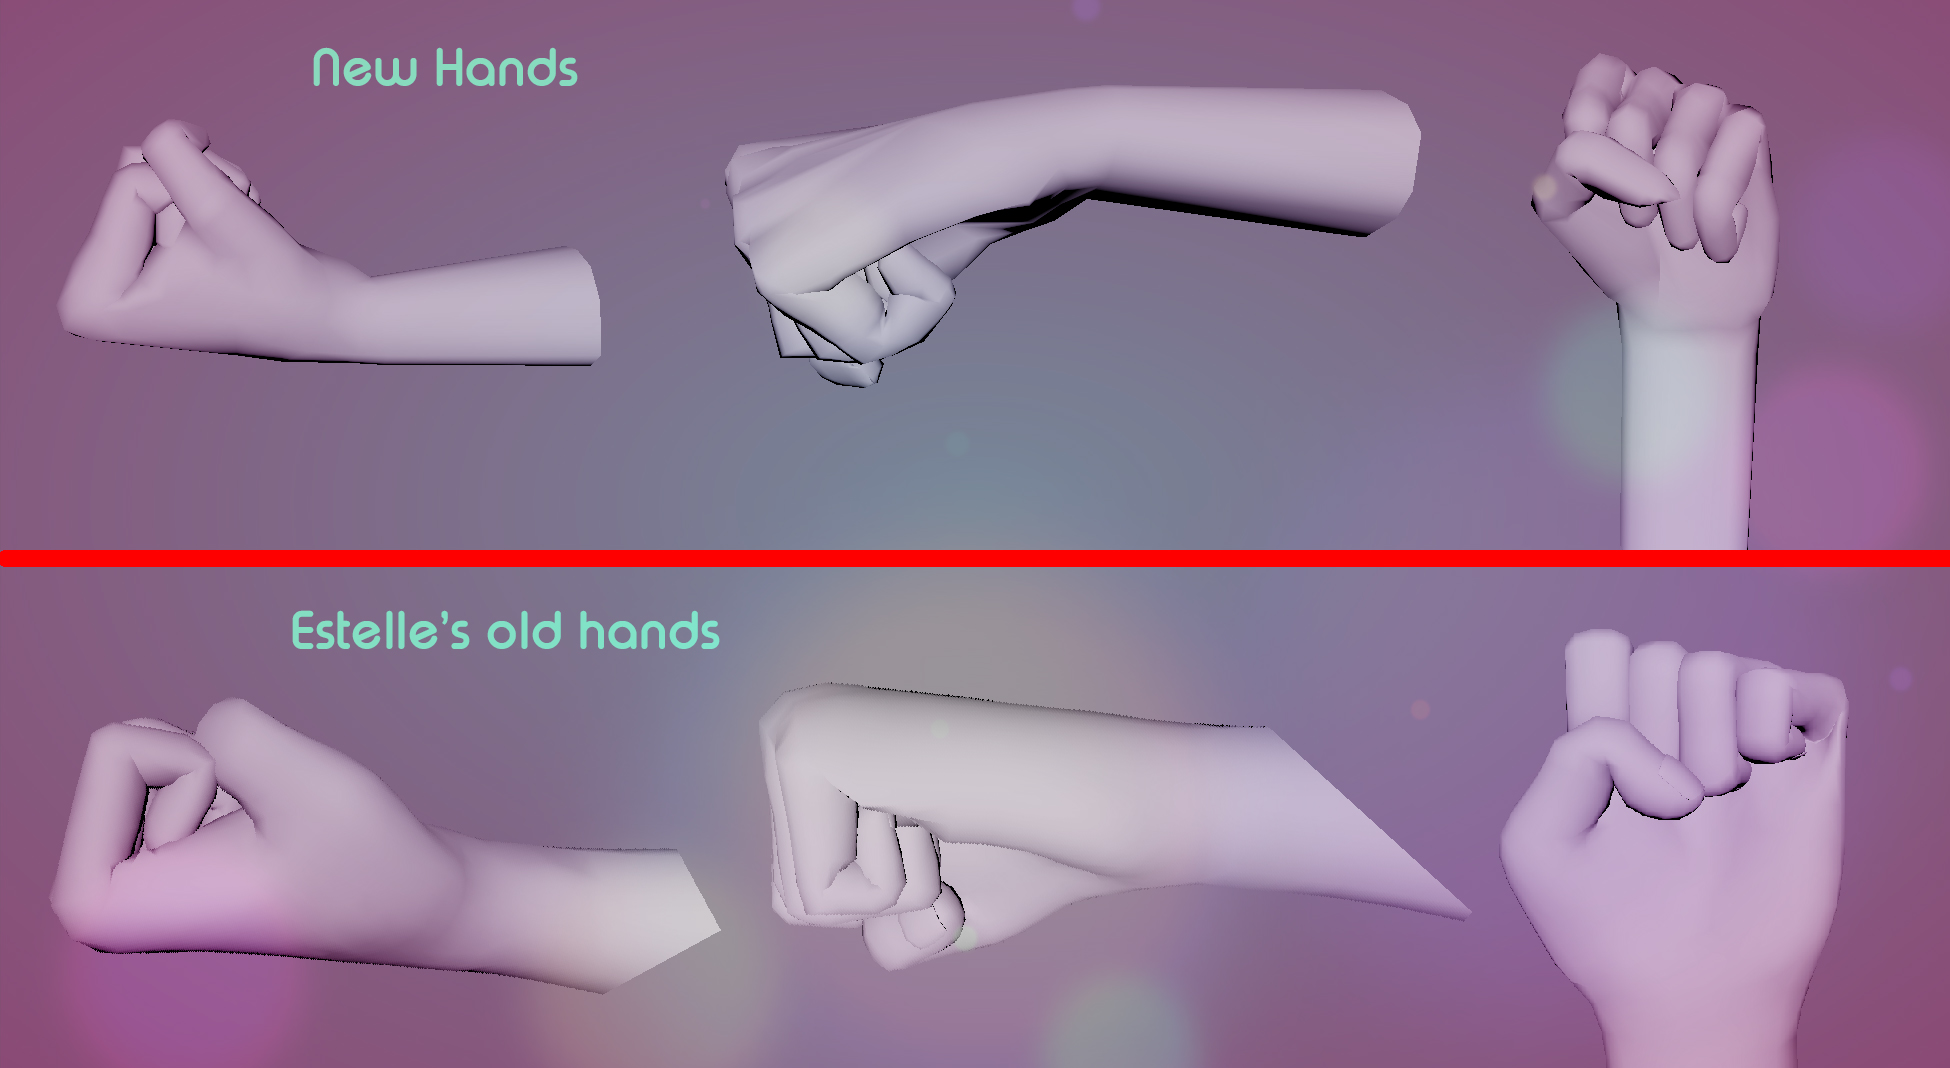 Side by side, new and old hand comparison.